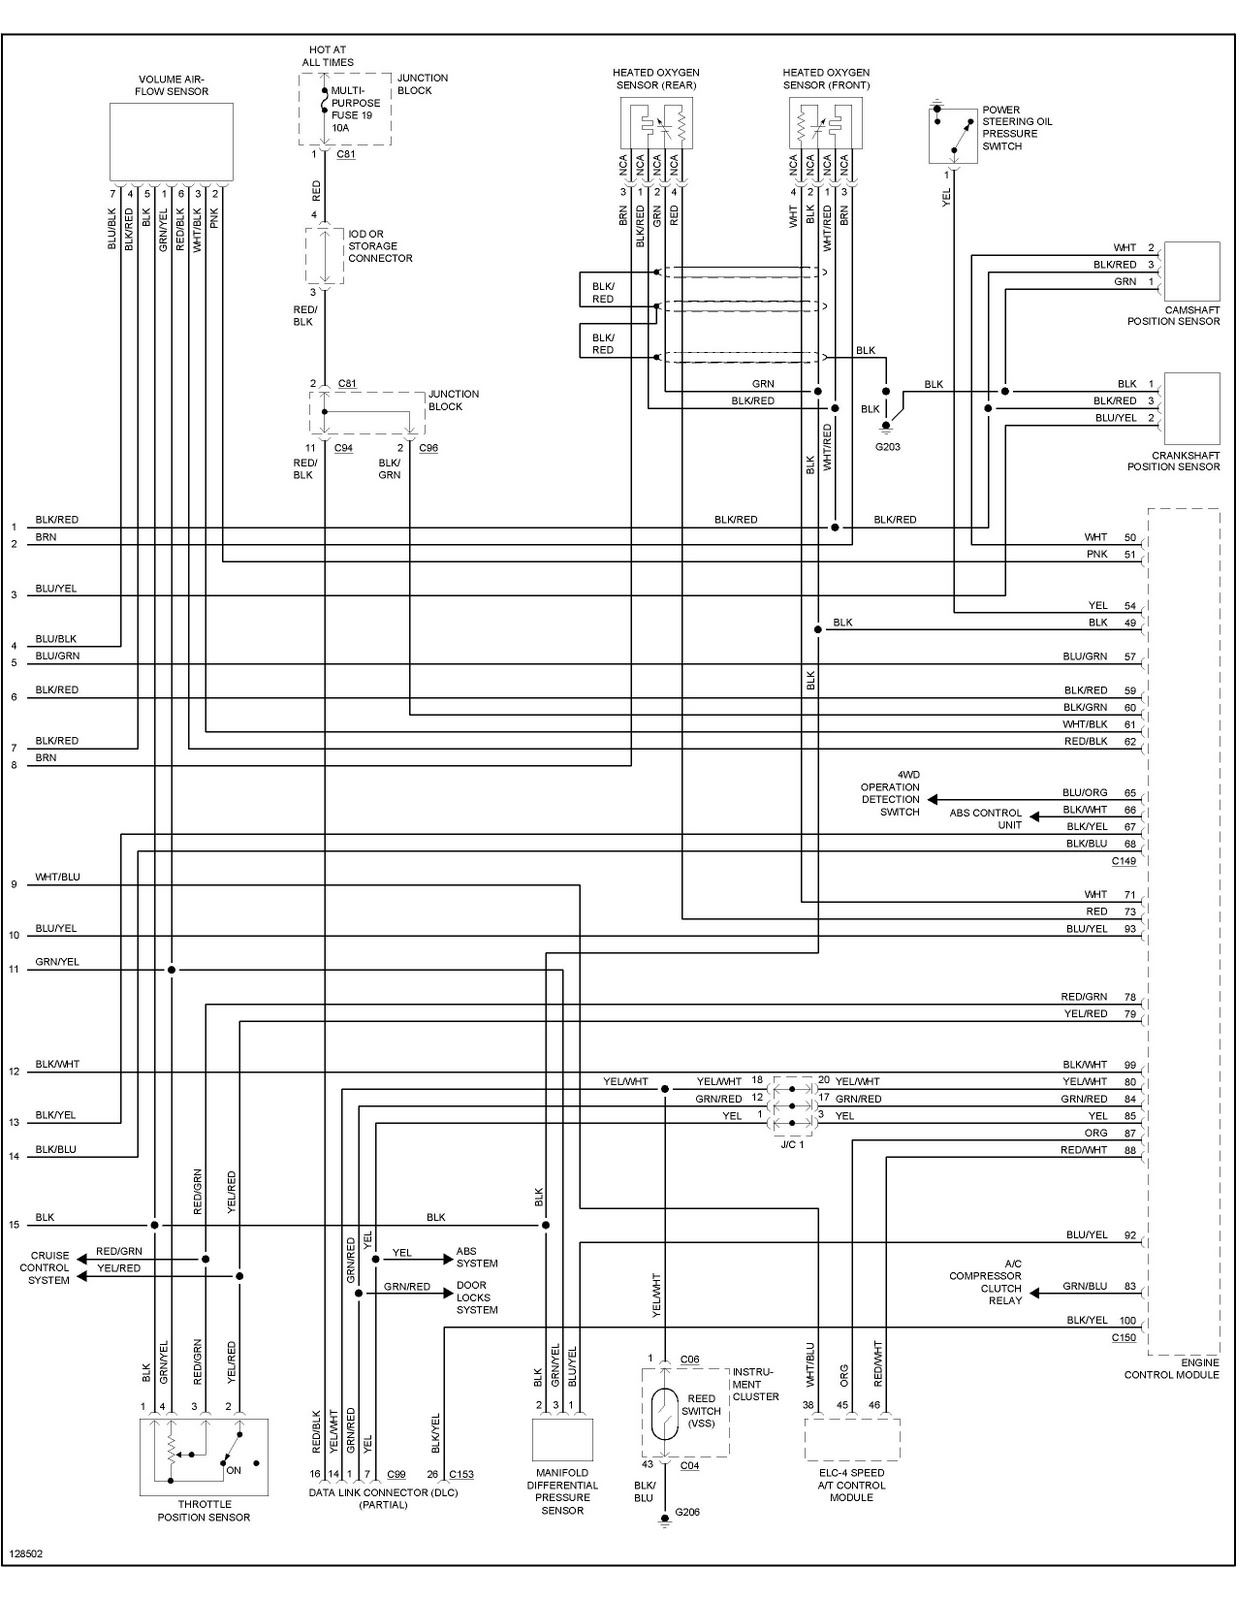 small resolution of wiring diagram for 2002 mitsubishi montero 1998 mitsubishi 2002 mitsubishi eclipse wiring diagram 2002 mitsubishi eclipse wiring diagram